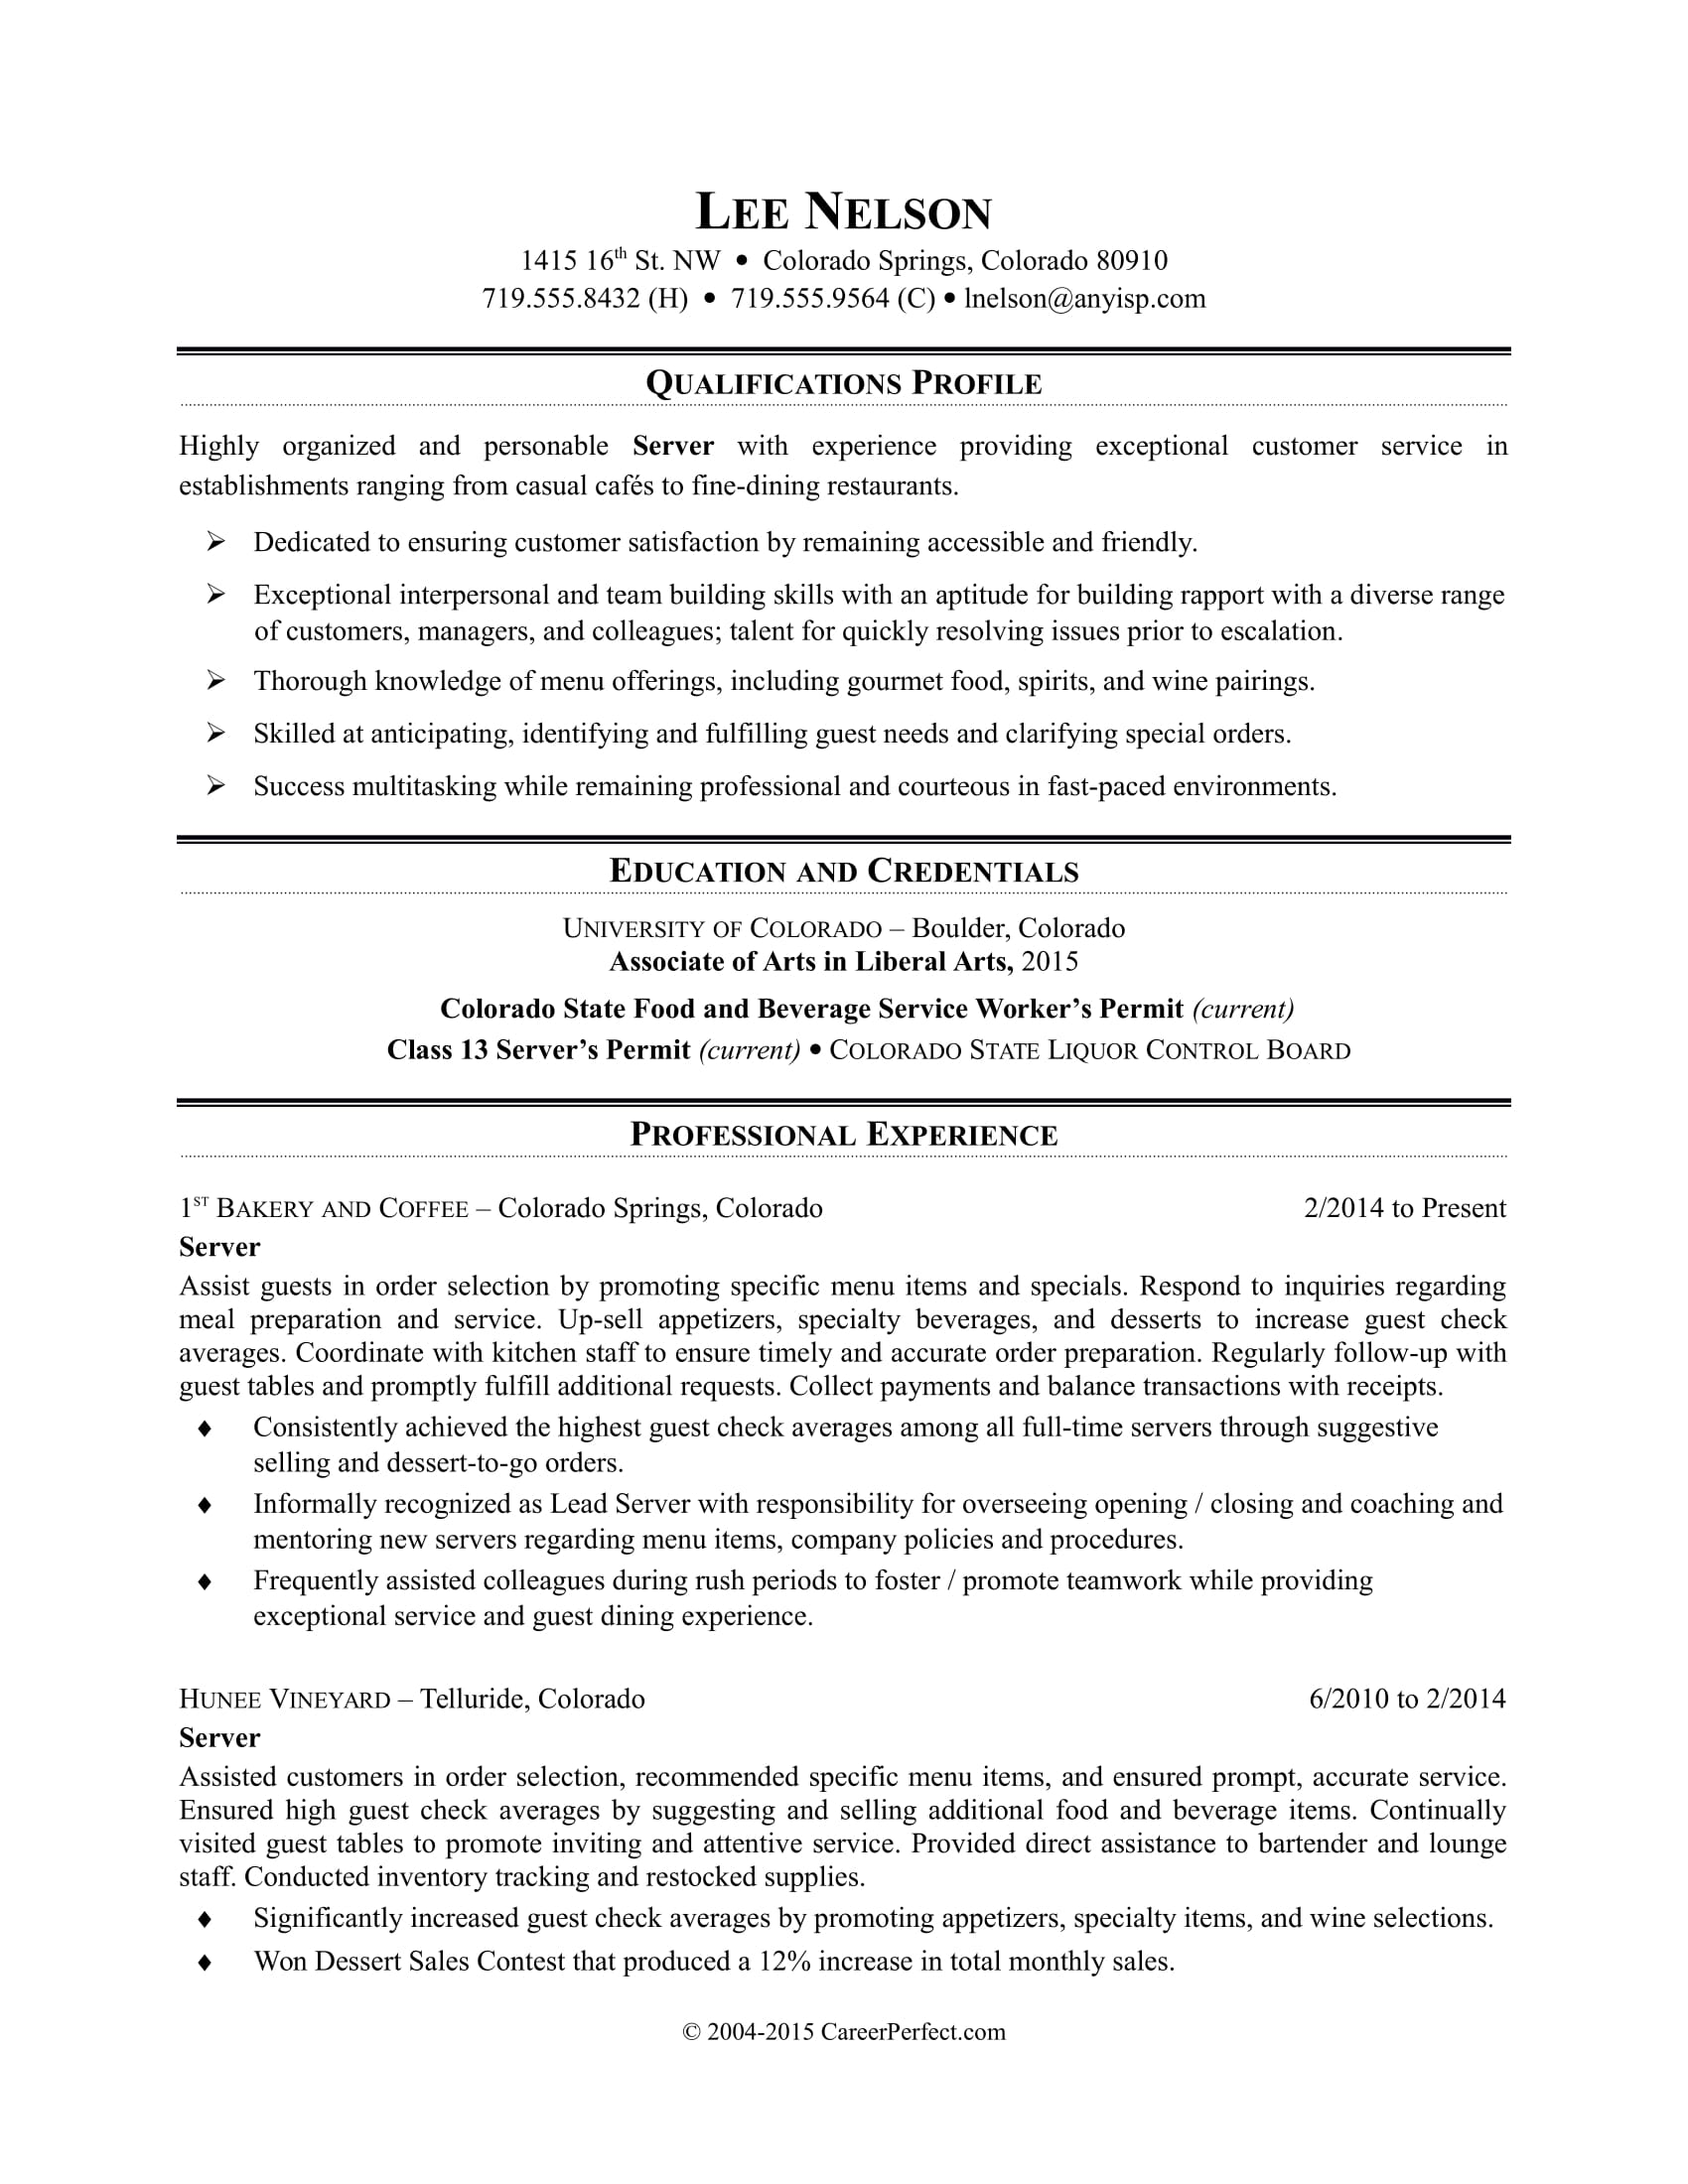 restaurant server resume sample monster great skills for review summary on indeed Resume Great Skills For Resume